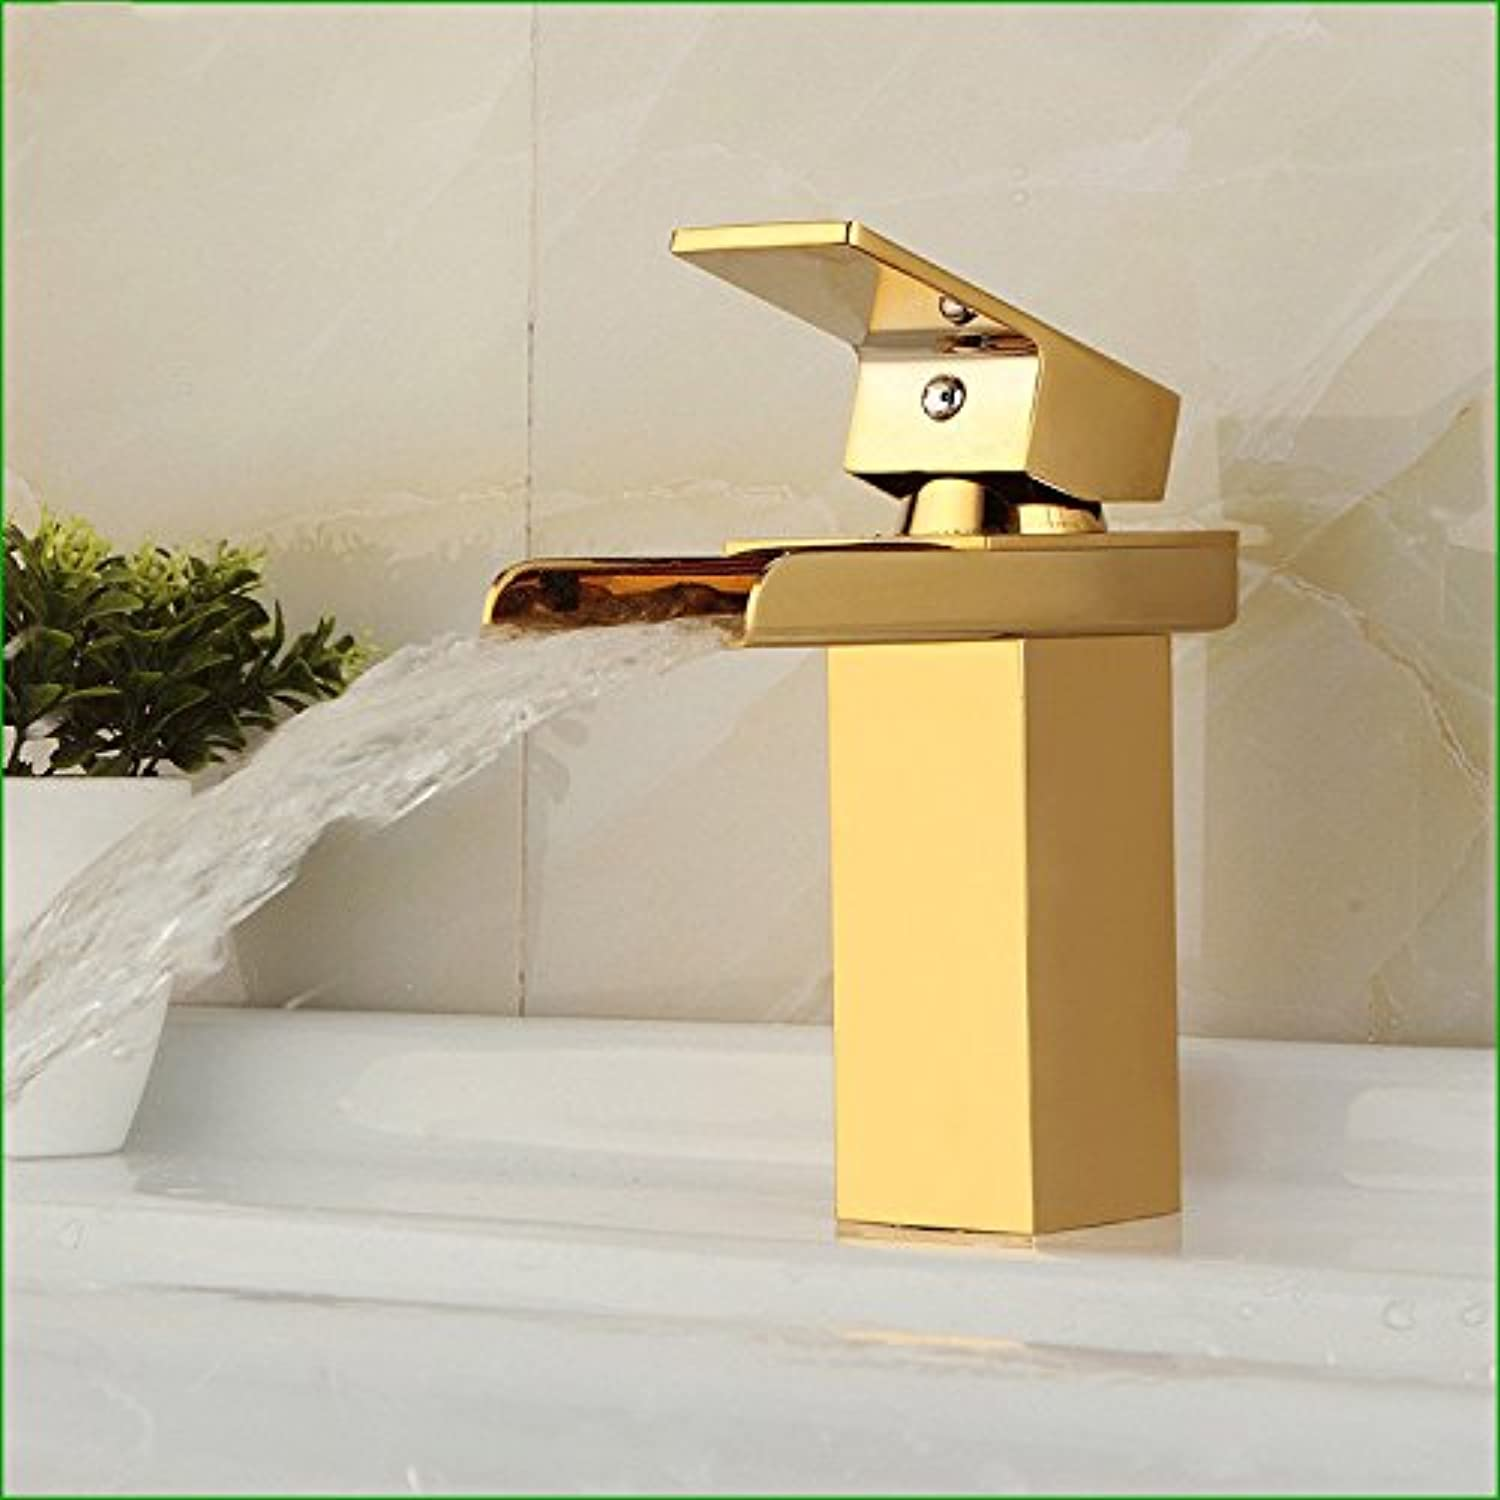 Hlluya Professional Sink Mixer Tap Kitchen Faucet The sink faucet full copper gold bathroom basin Falls Water Square Basin Sinks Faucets Mixer Taps